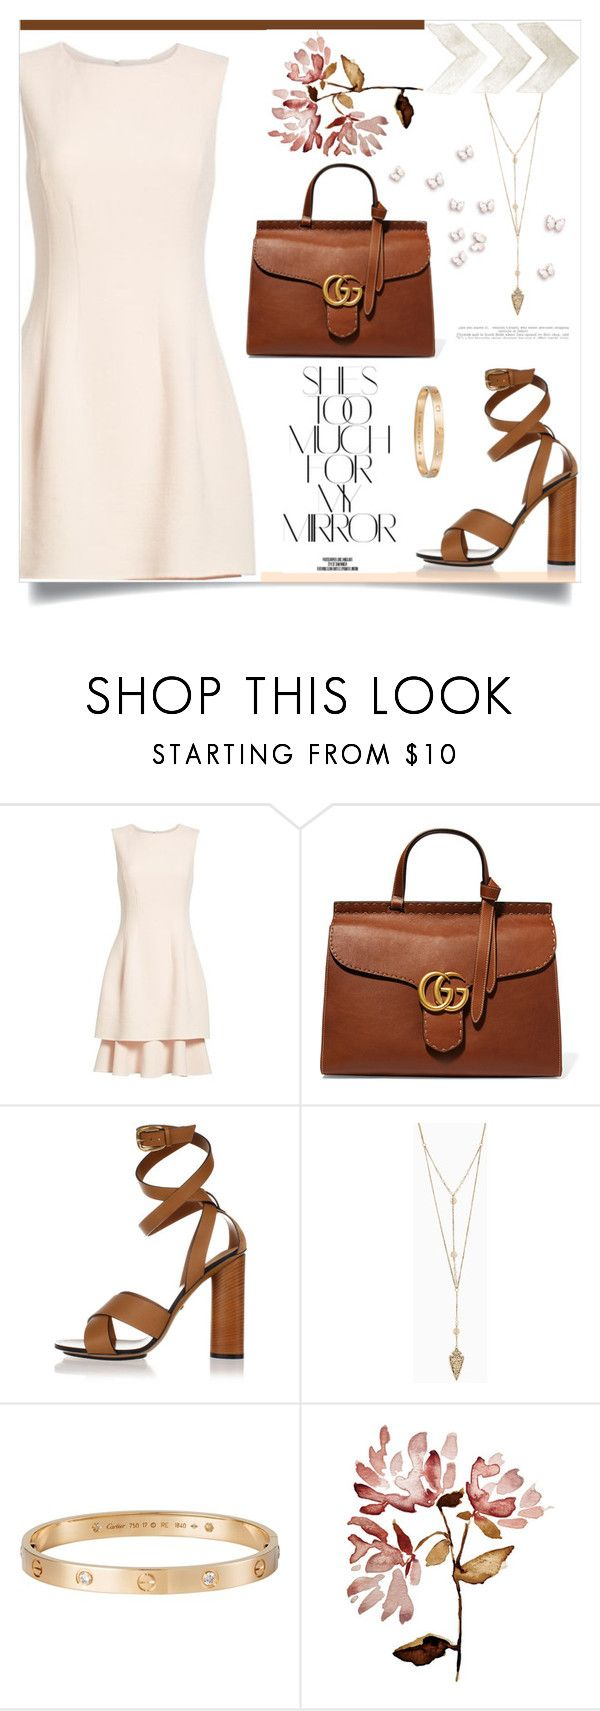 """Untitled #185"" by d-meggy ❤ liked on Polyvore featuring Oscar de la Renta, Gucci, Cartier and Rika"